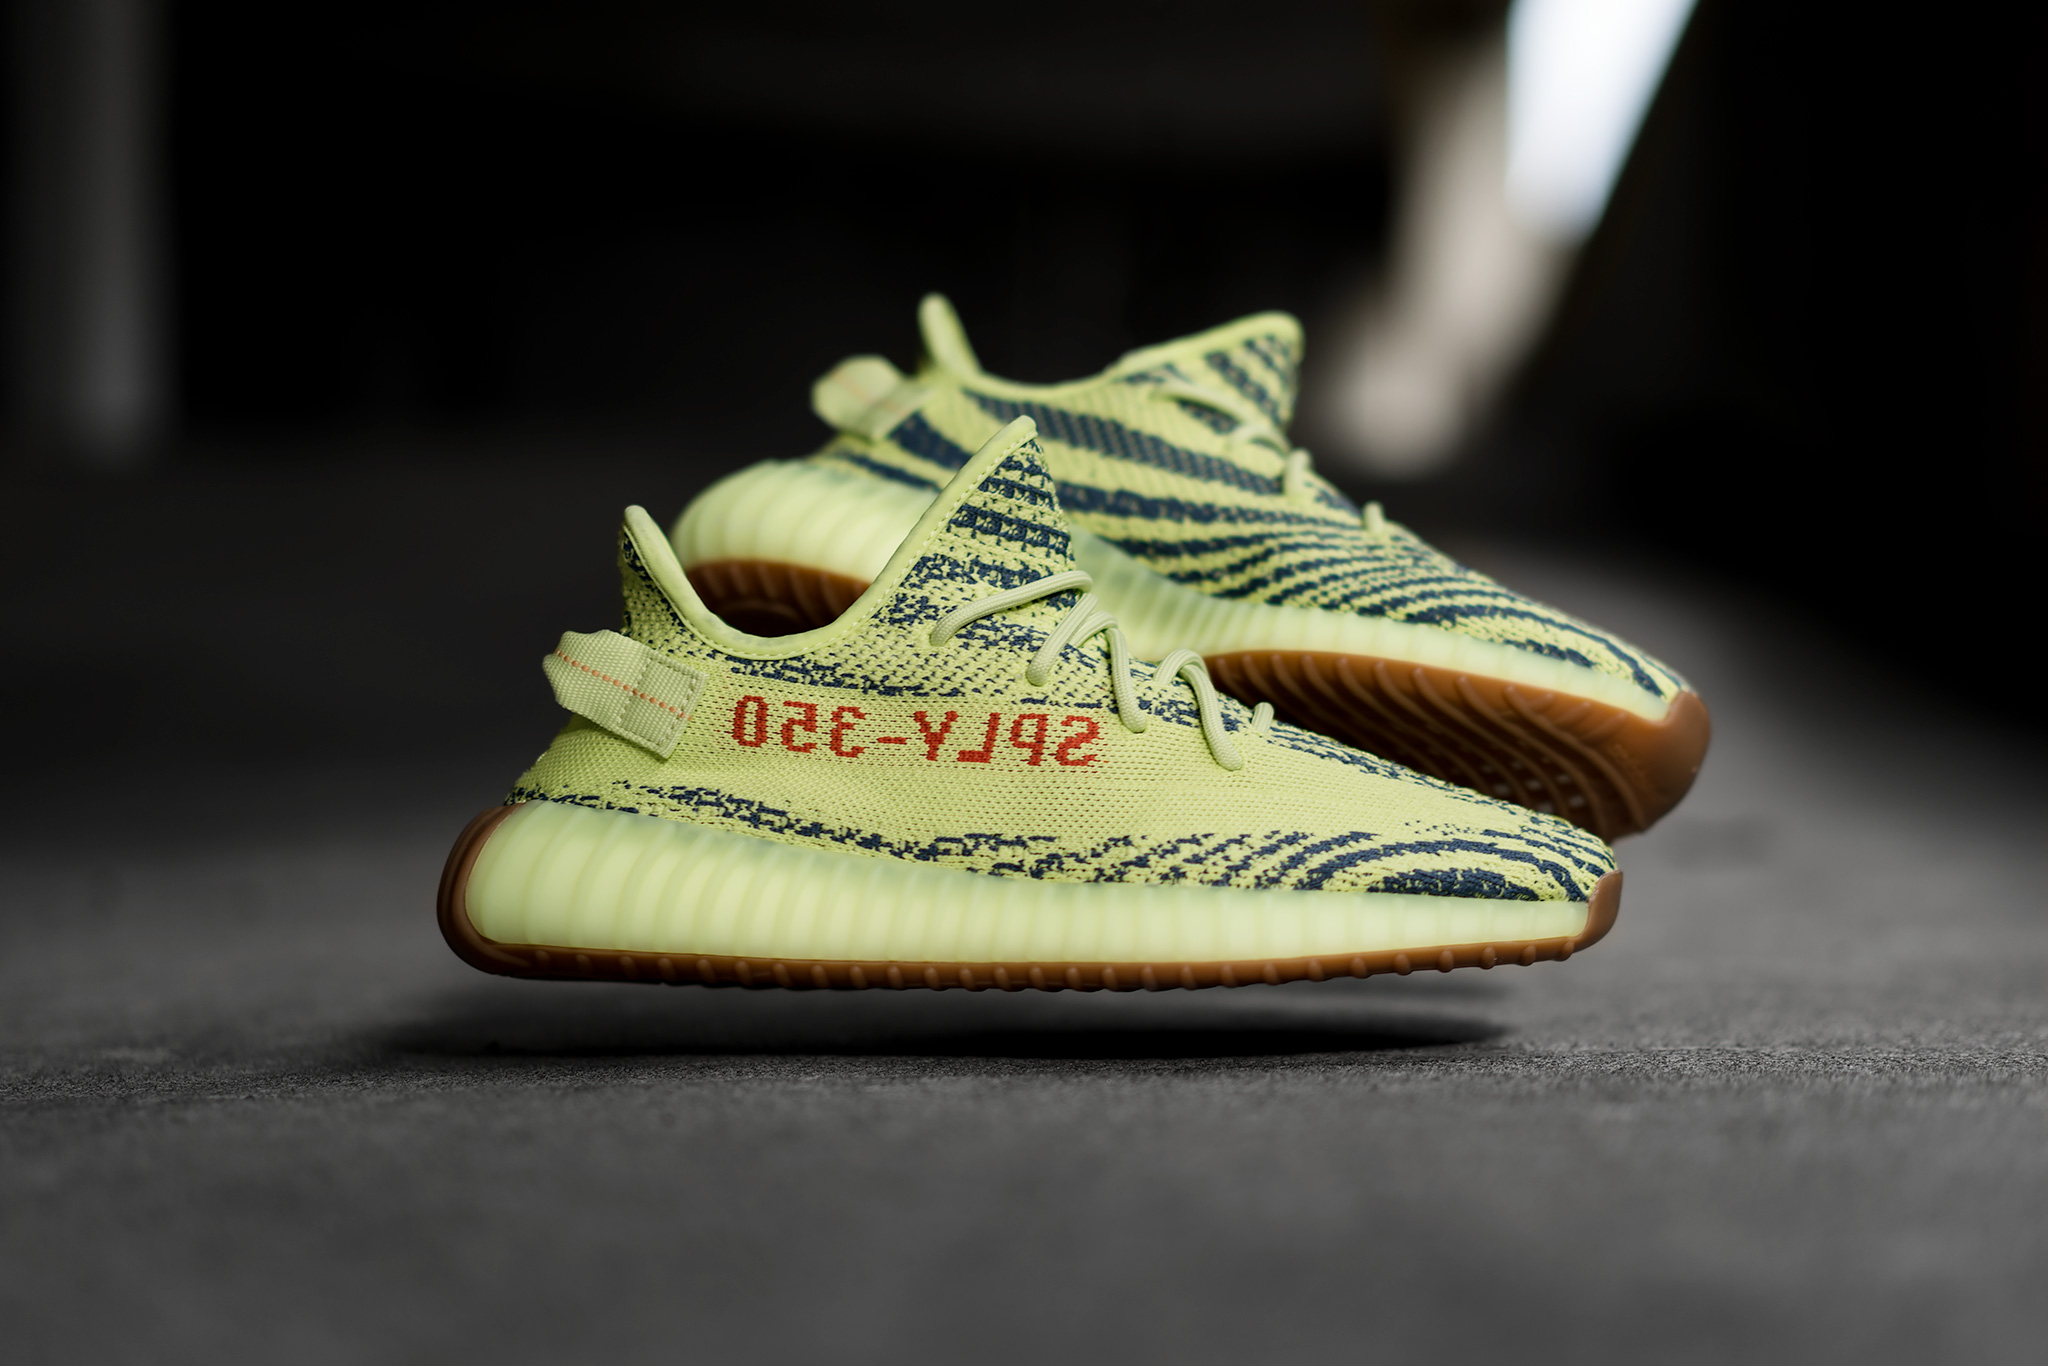 11c18feb65205 ... Kanye West s partnership with adidas is set to release at HAVEN on  November 18th. Featuring the 3 stripes proprietary PrimeKnit construction